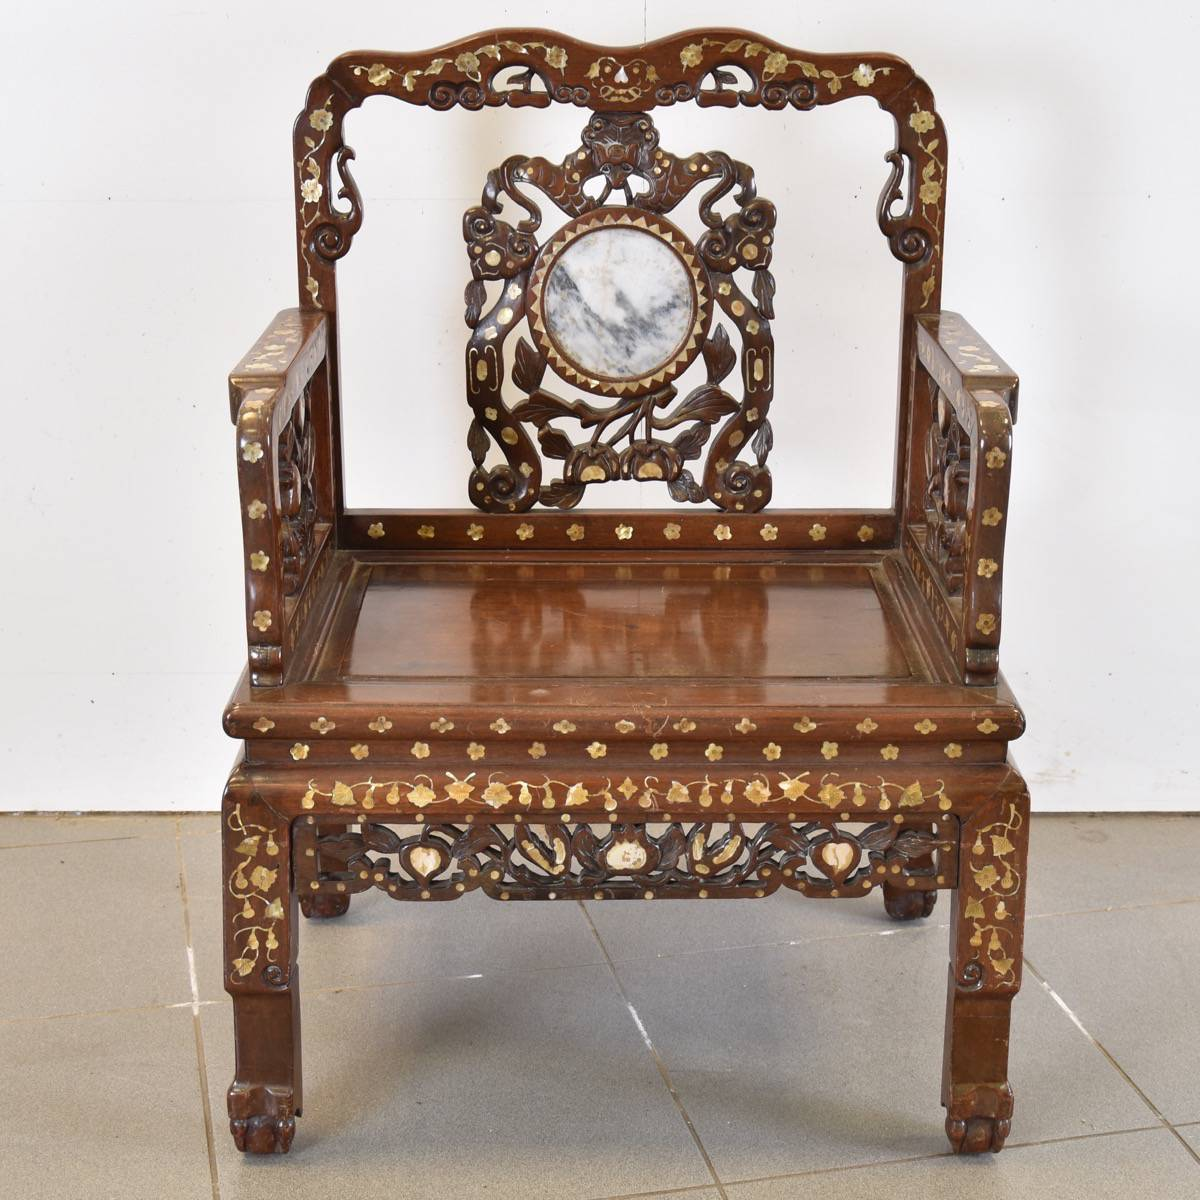 stool chair in chinese garage with wheels pair of inlaid chairs marble inset